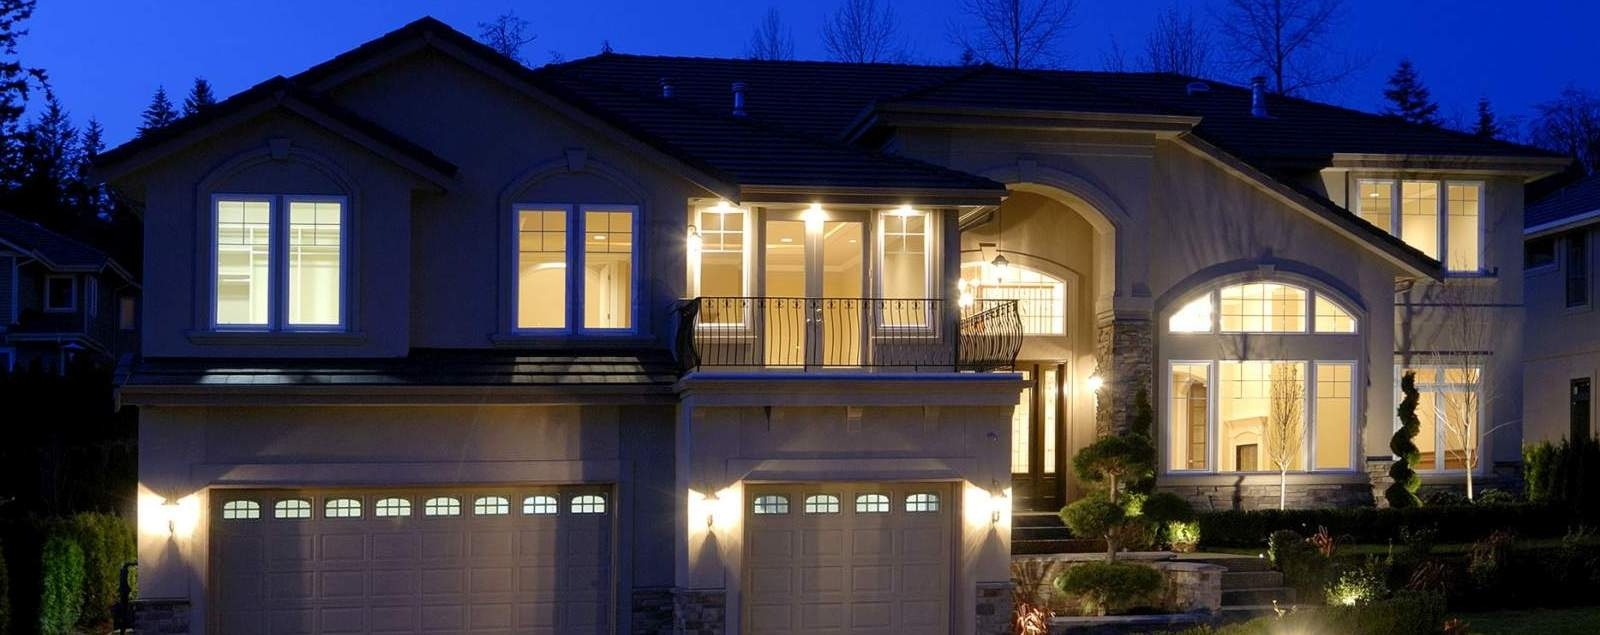 Outdoor Exterior Lanterns Pertaining To Most Current Outdoor Light Fixtures – Home Exterior Pendants, Flush & Porch Lighting (Gallery 14 of 20)